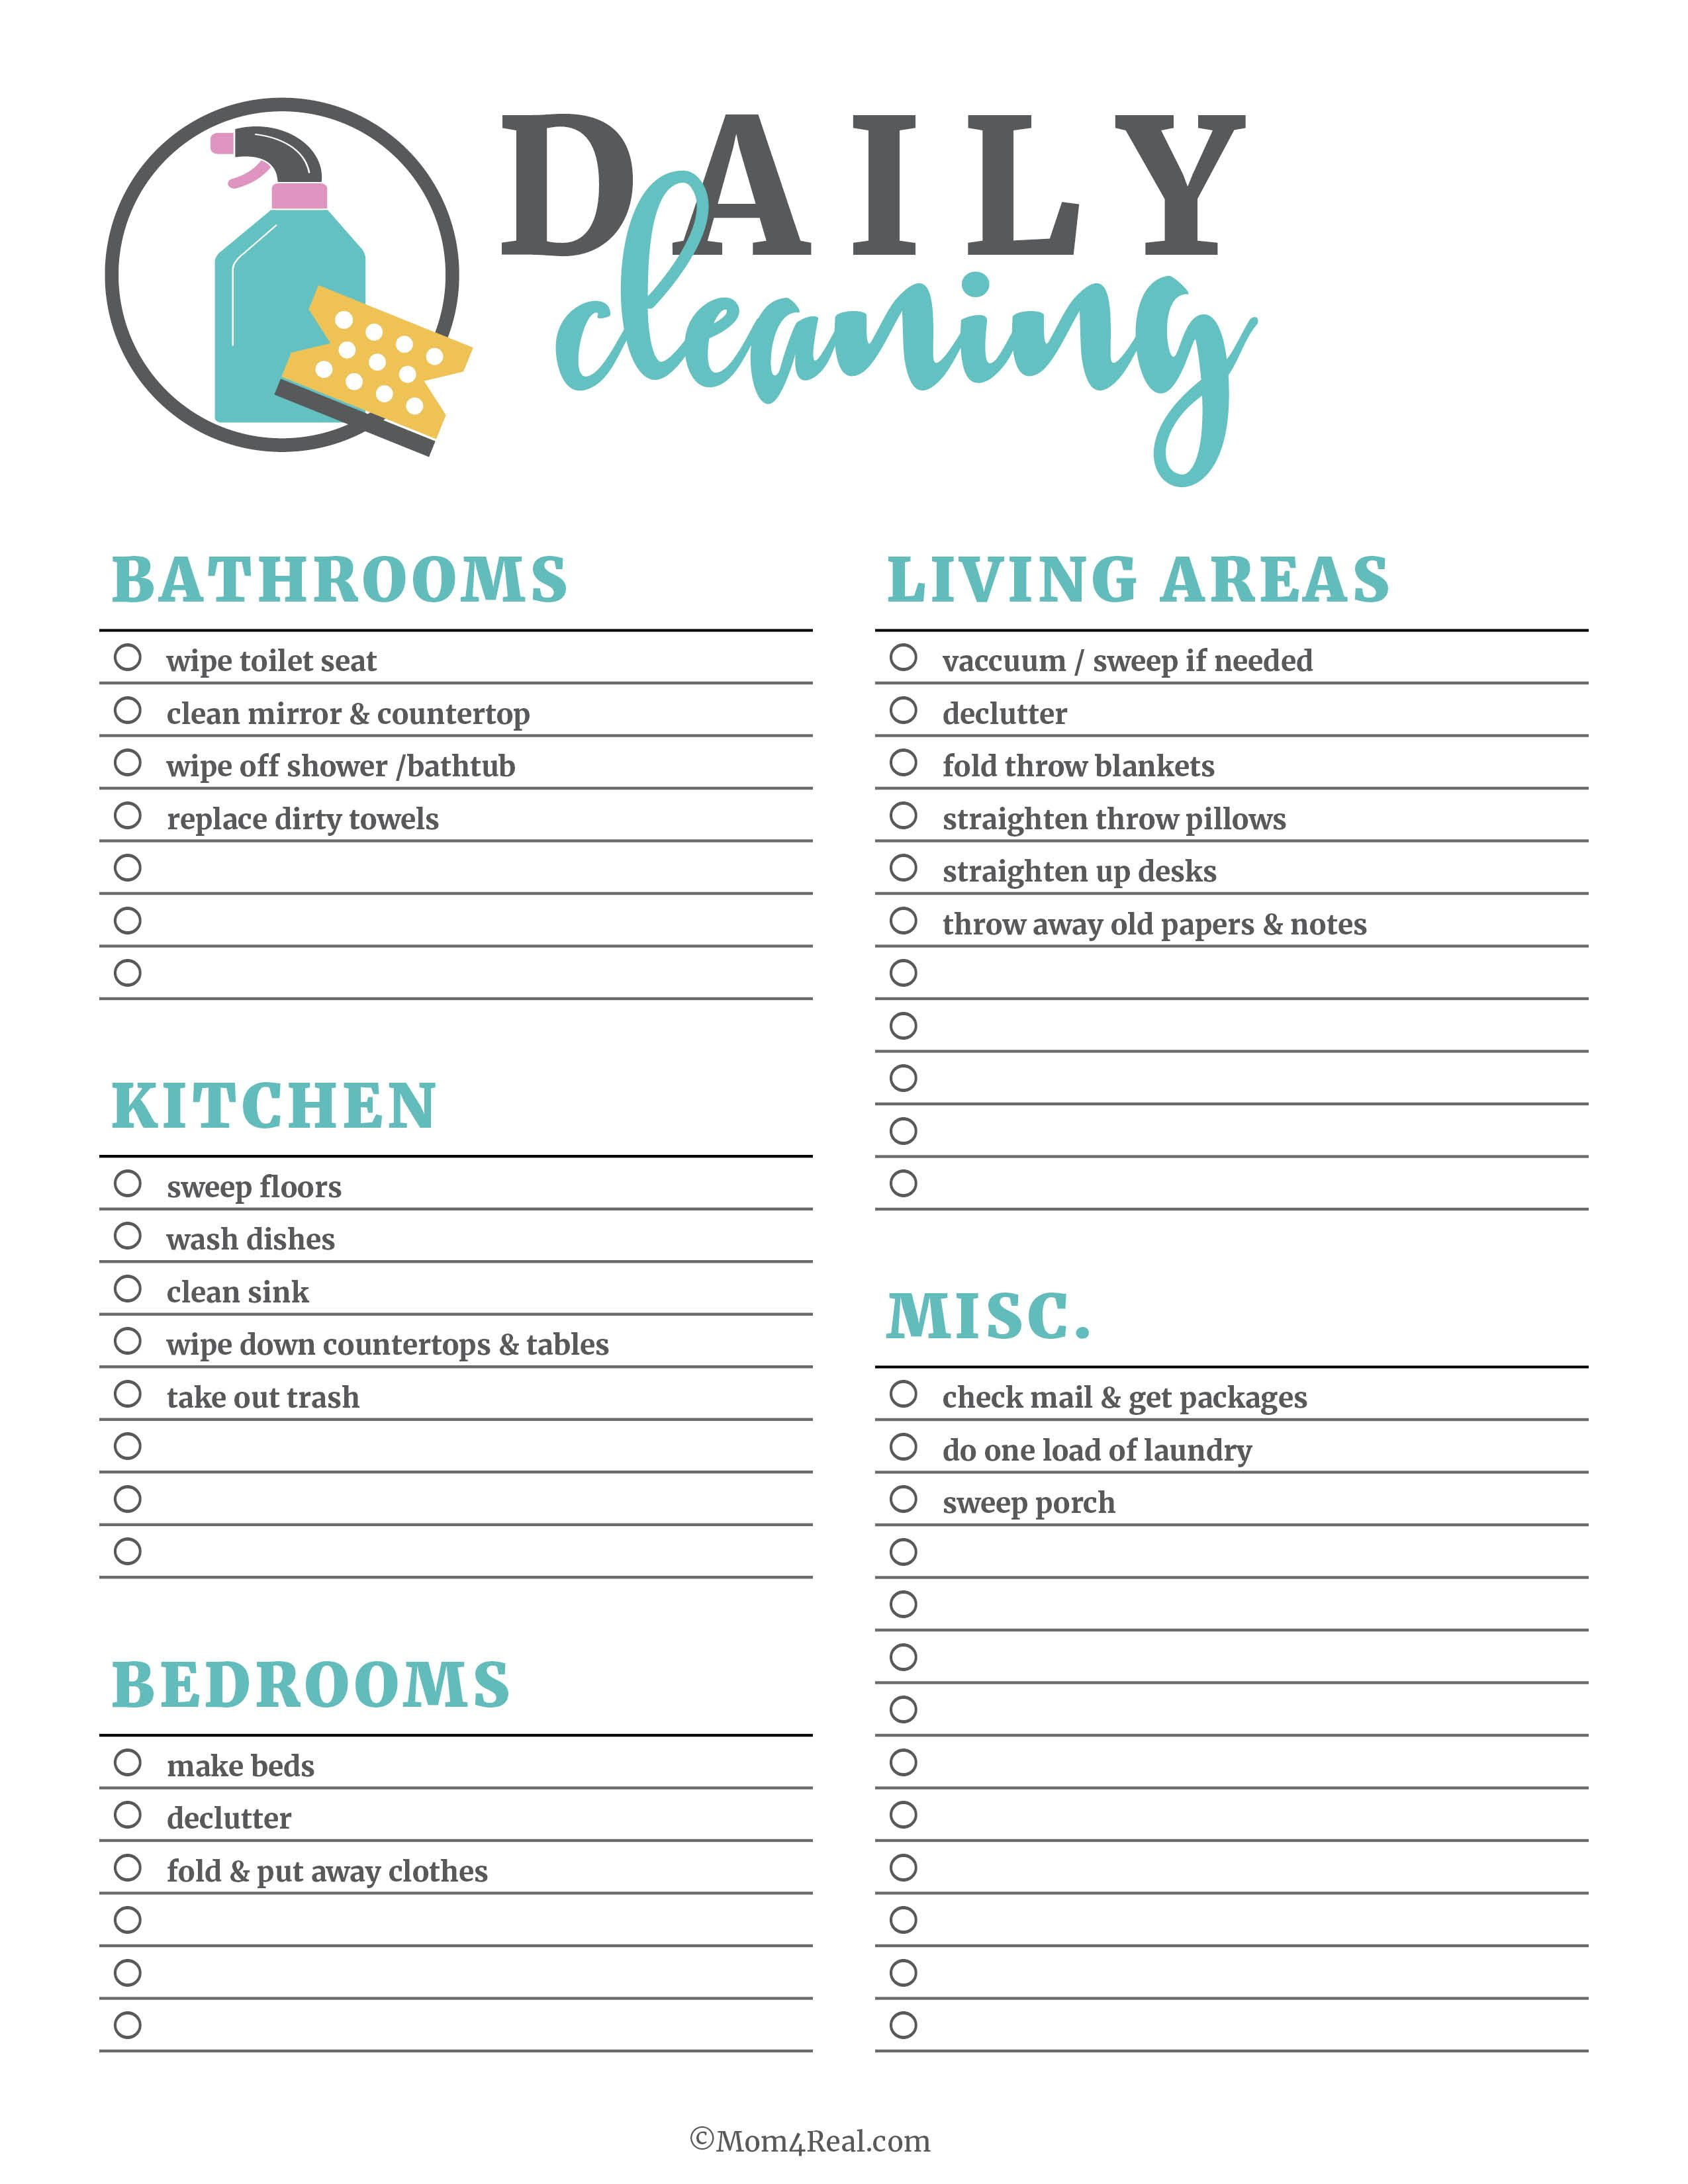 photograph regarding Printable Cleaning Checklist called Printable Cleansing Checklists for Everyday, Weekly and Regular